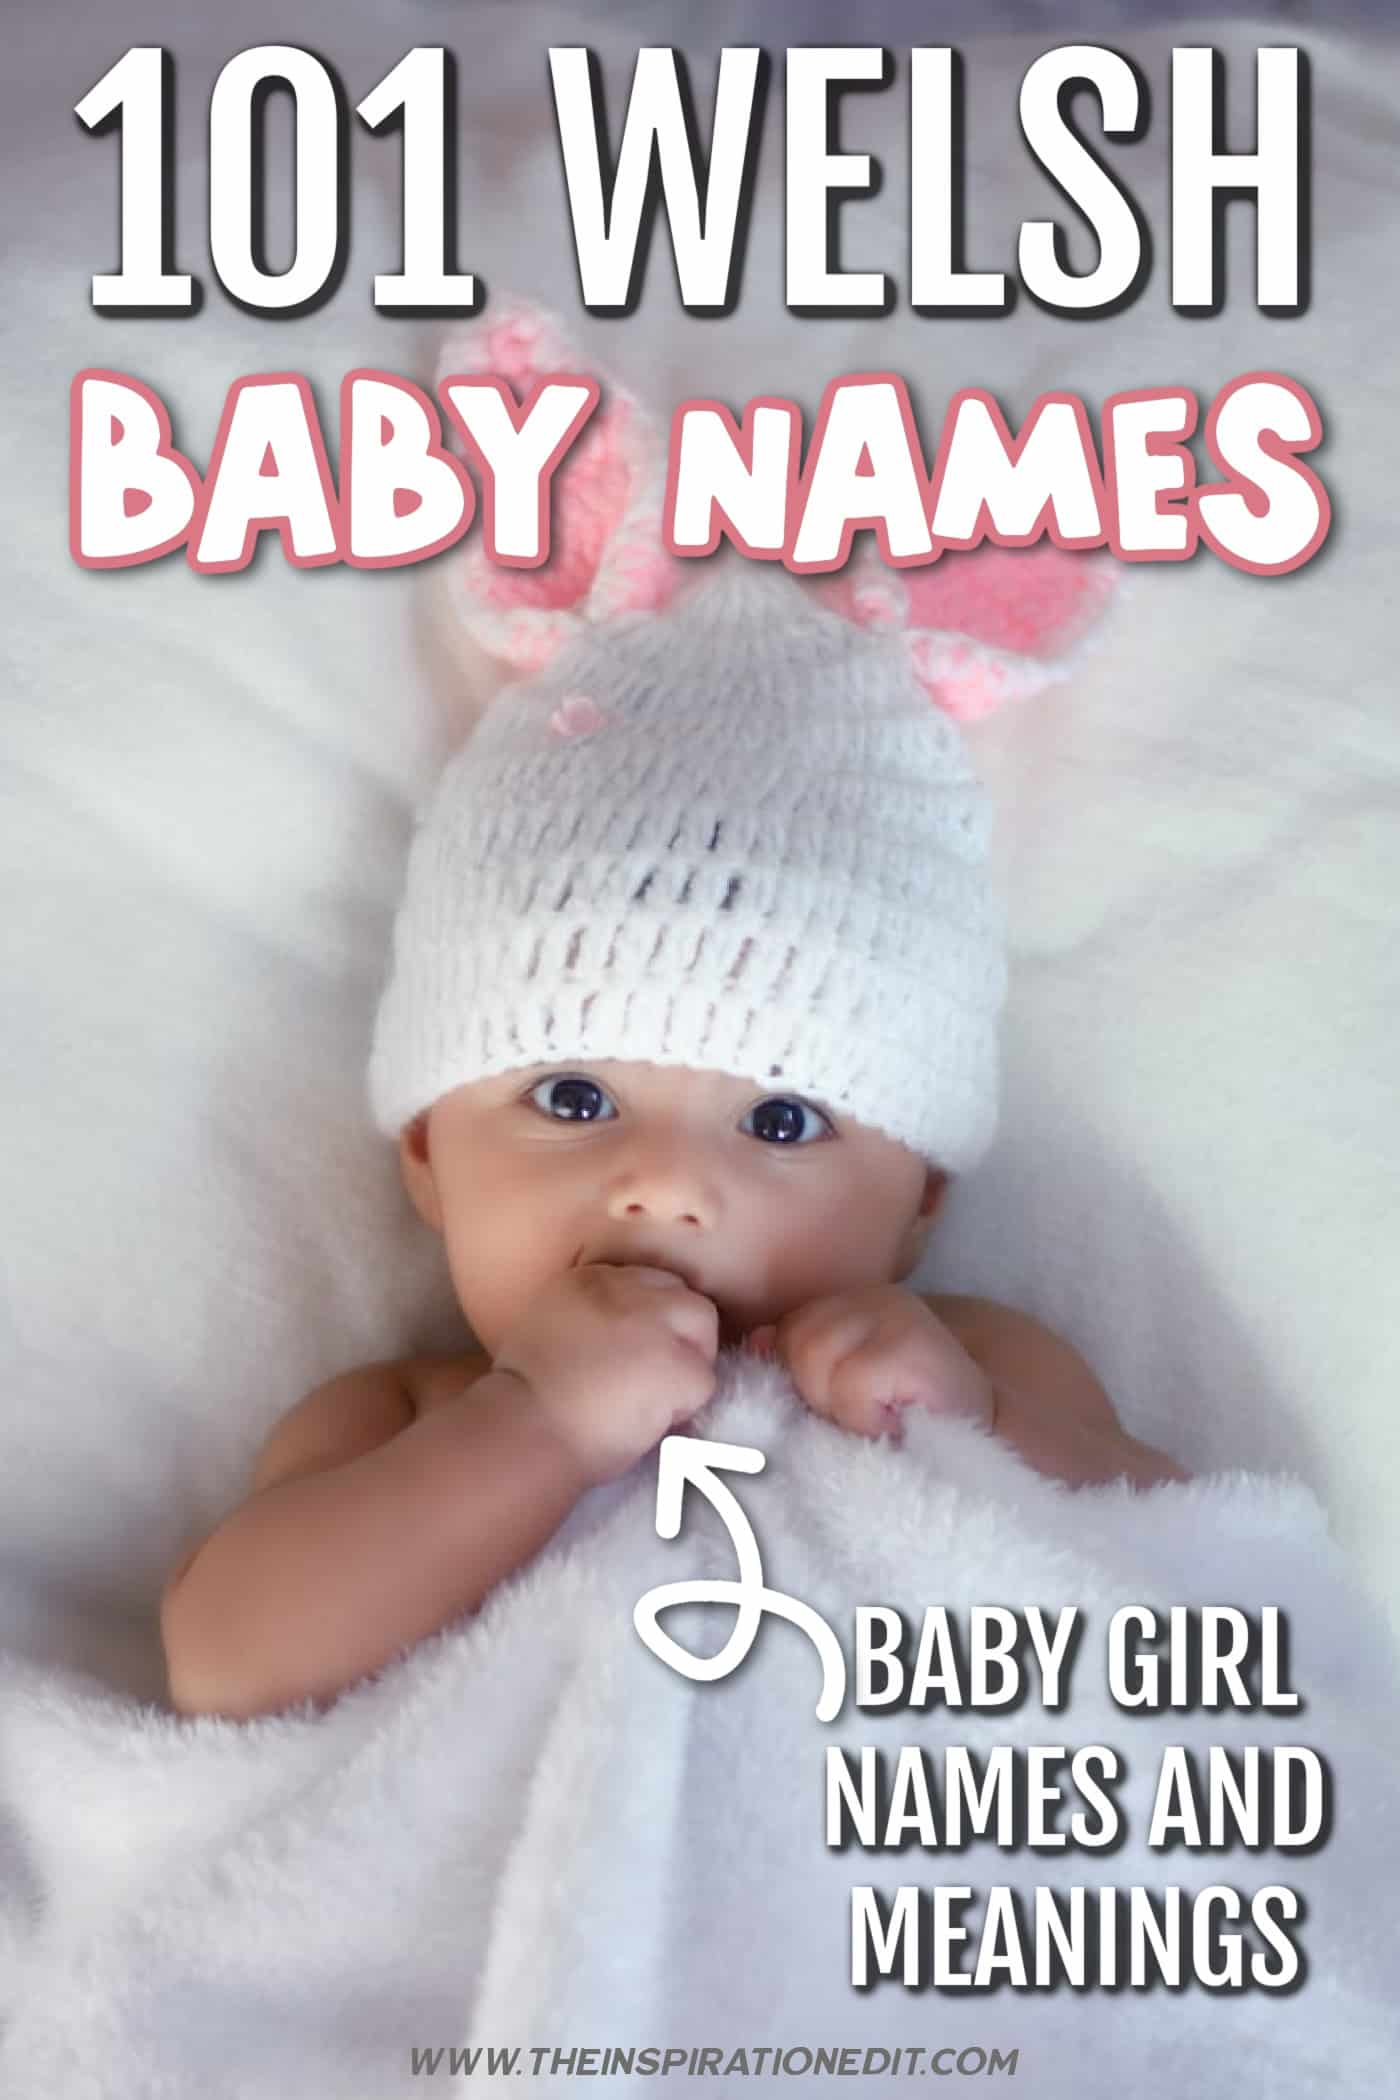 WELSH-BABY-NAMES-